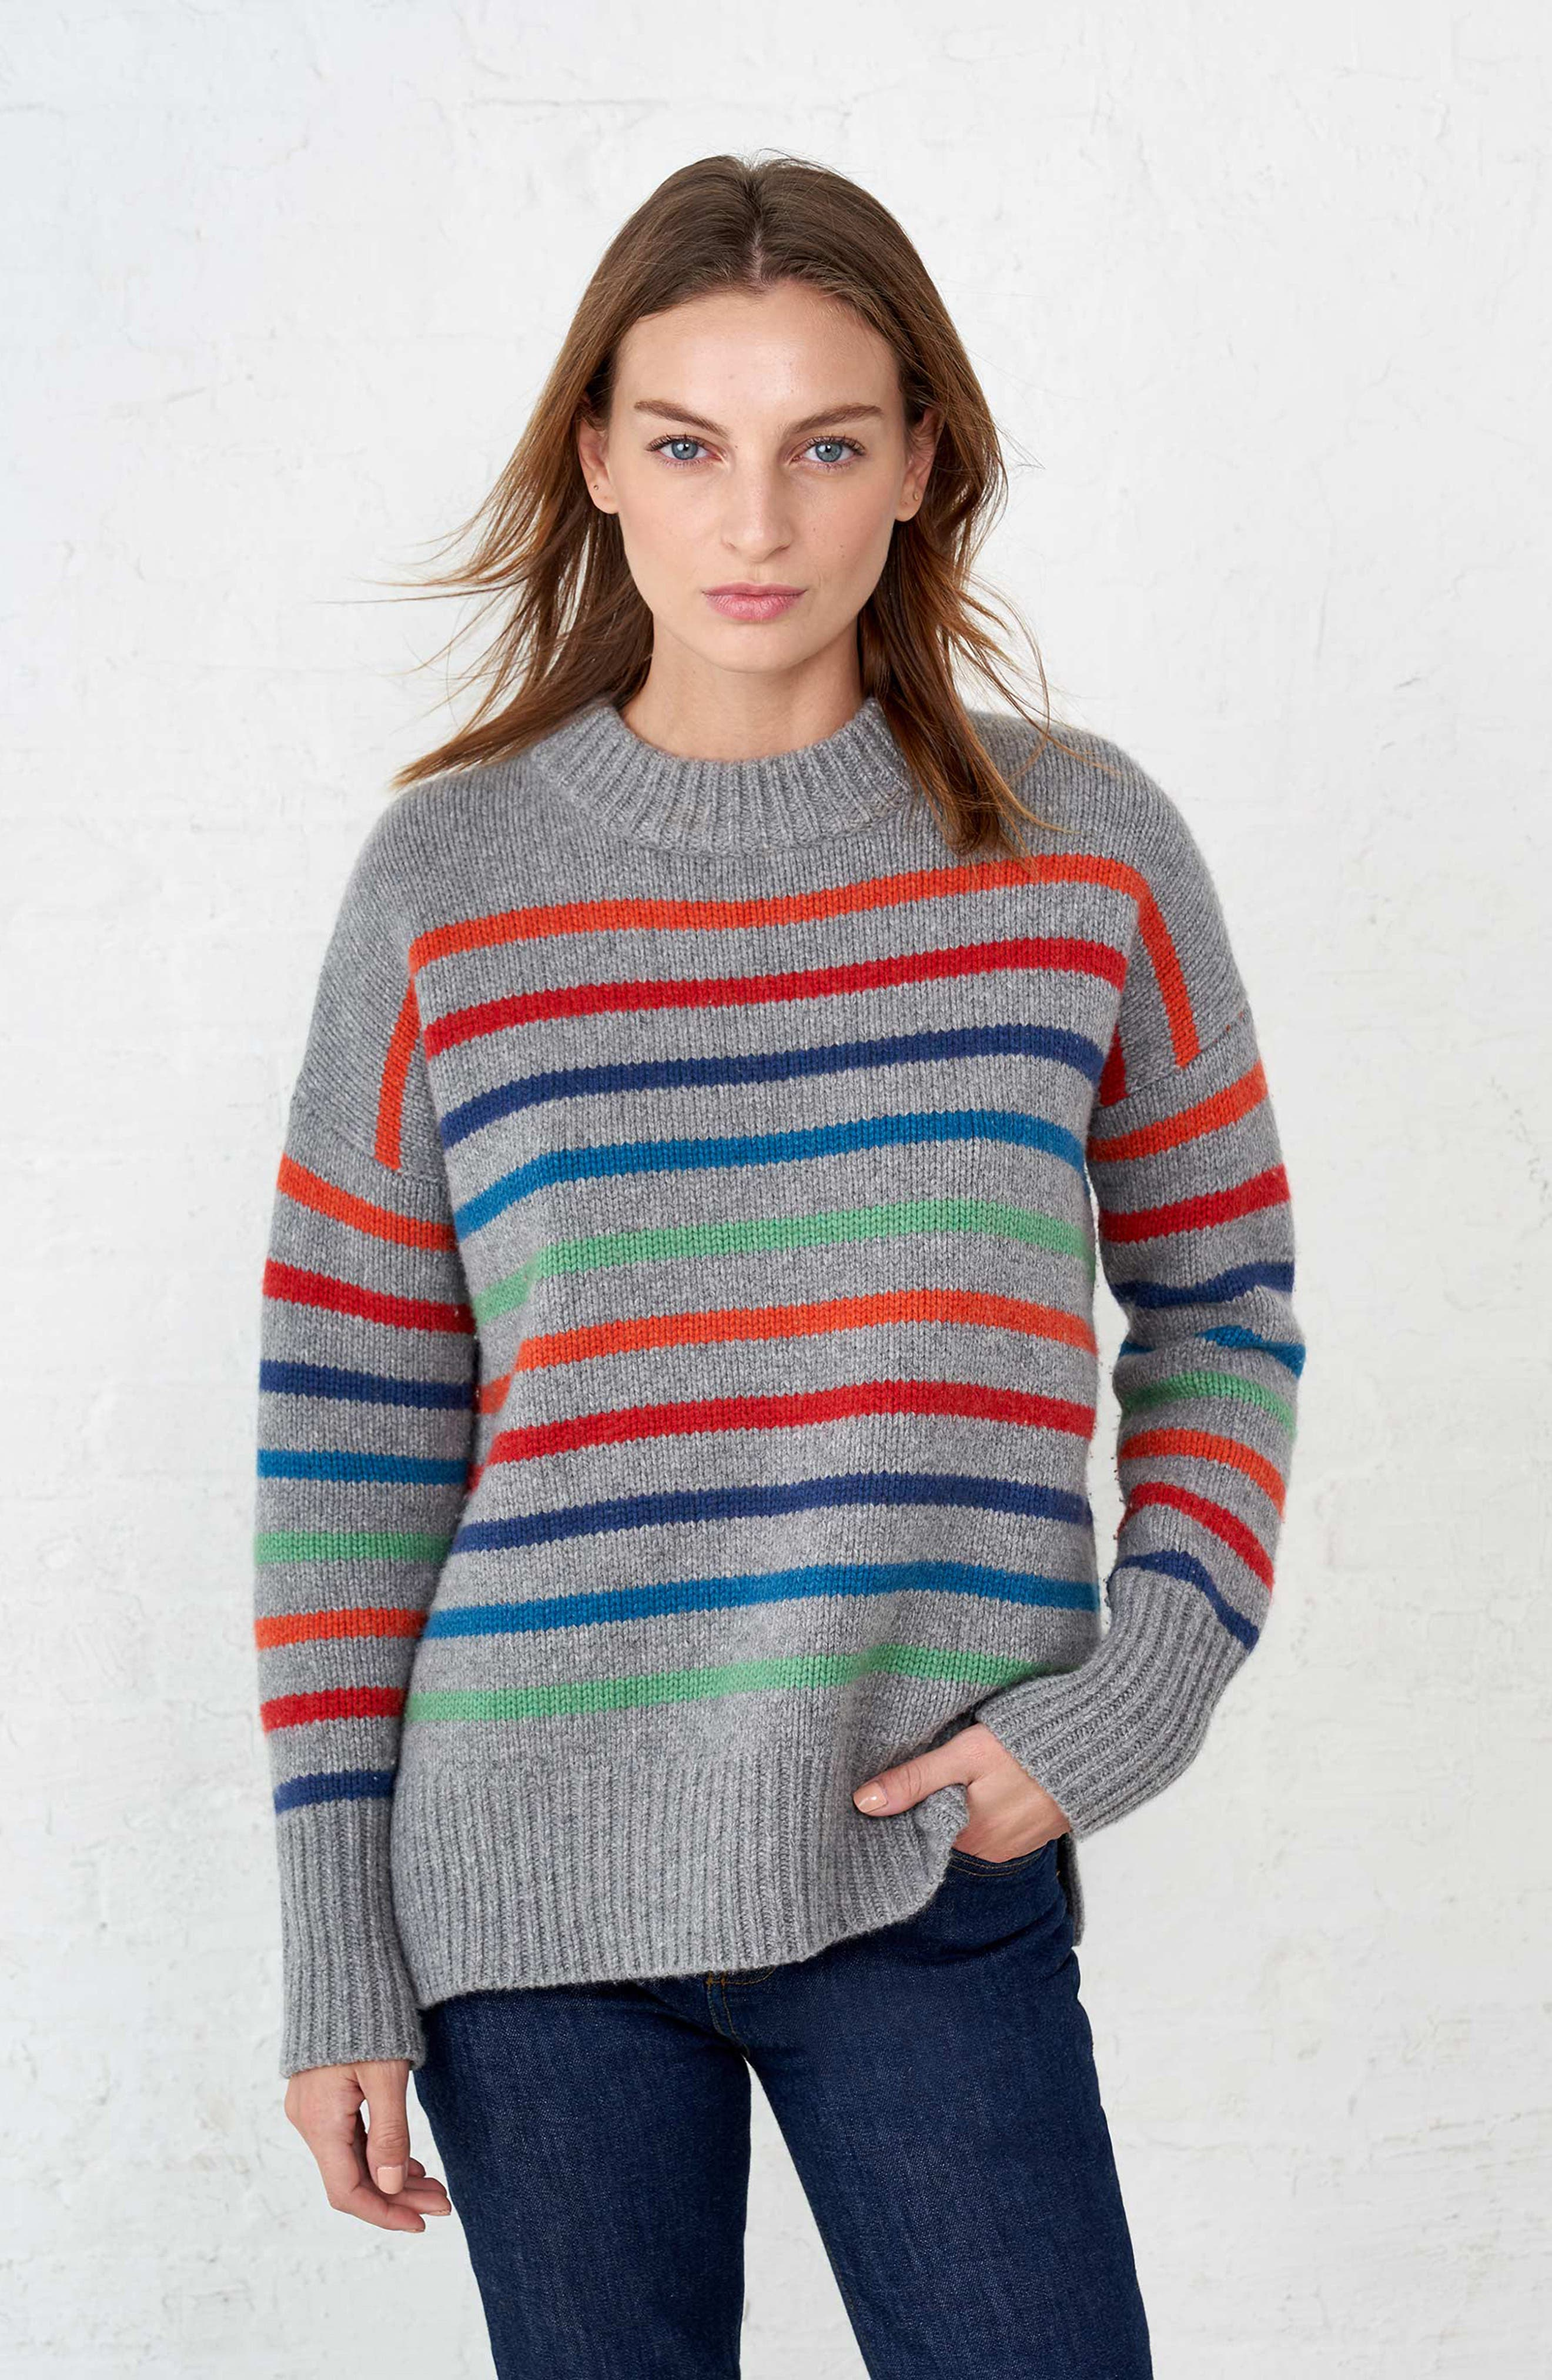 Marin Wool & Cashmere Sweater,                             Alternate thumbnail 7, color,                             RAINBOW STRIPE